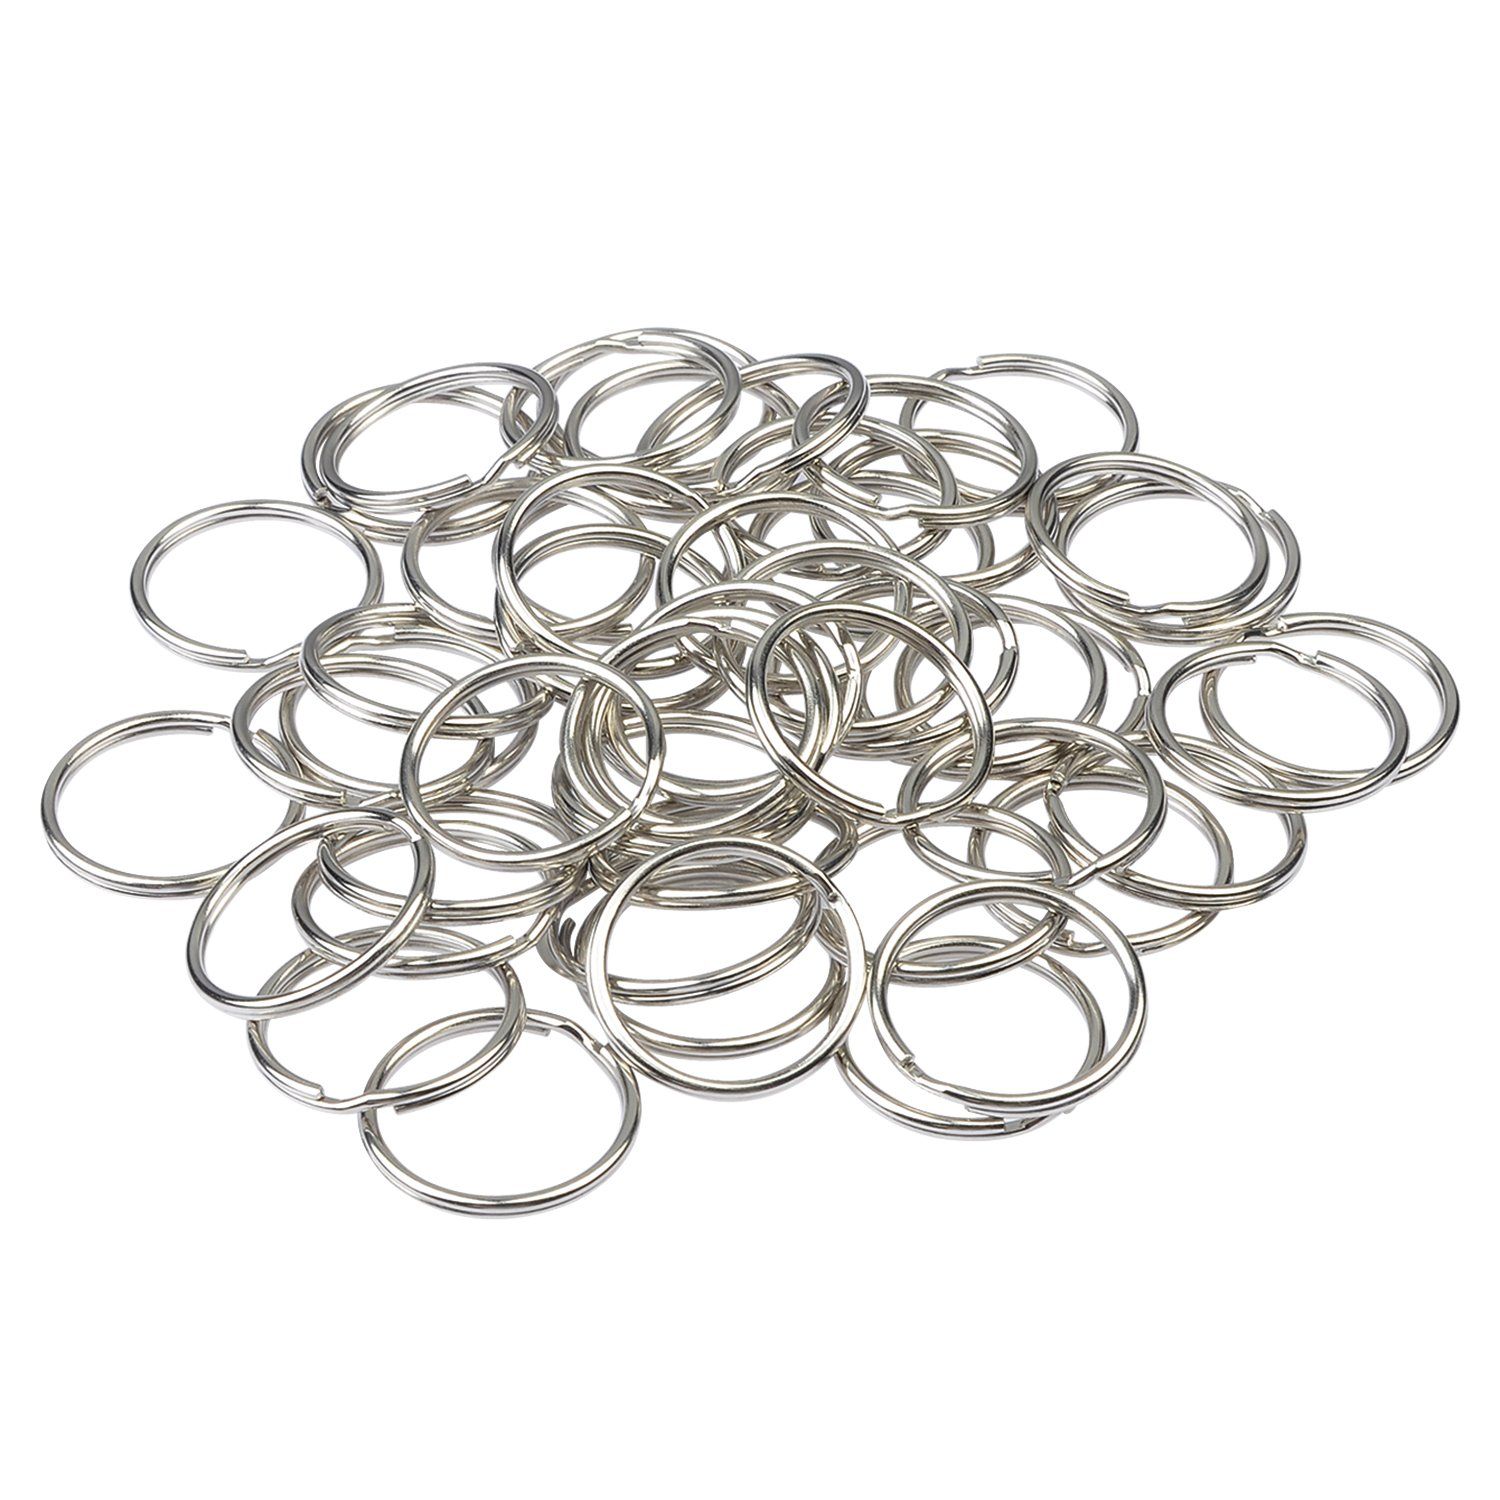 Oisee 50Pcs Metal Split Key Ring with Chain Components Clasp for DIY 1.5/25MM